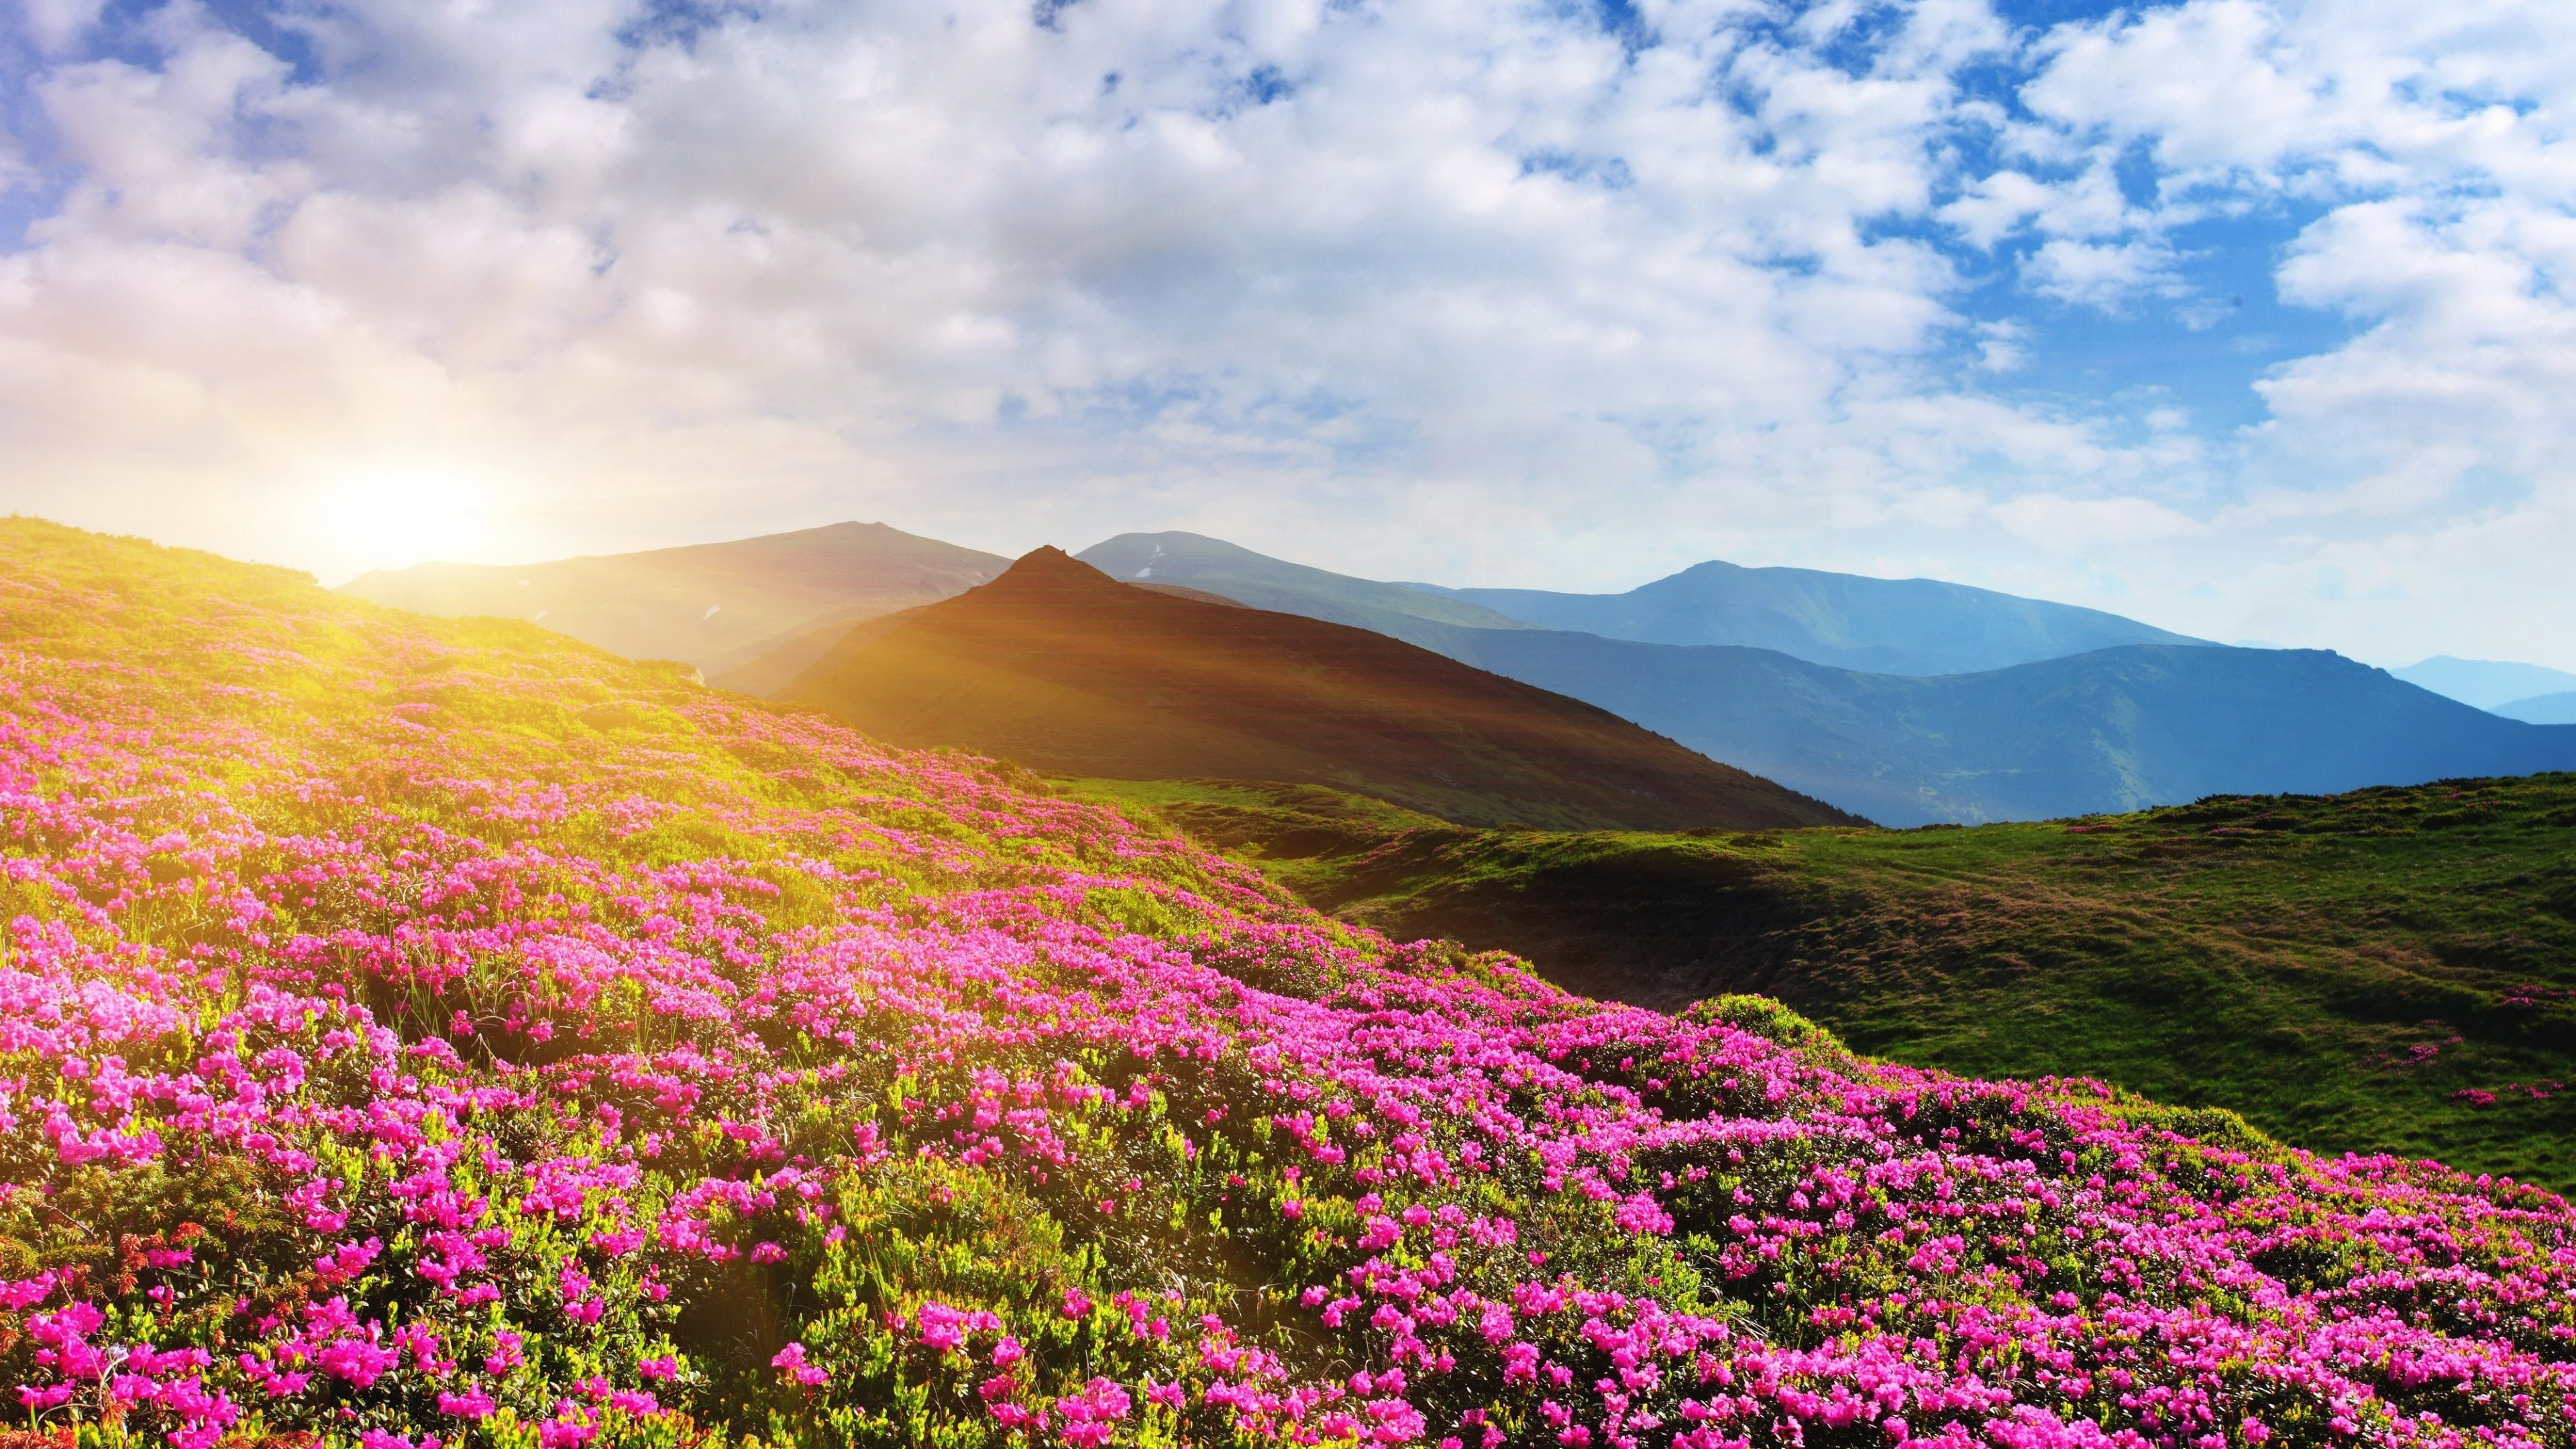 3840x2160 #Summer, #Rhododendron flowers, #Mountain, #4K, #Pink